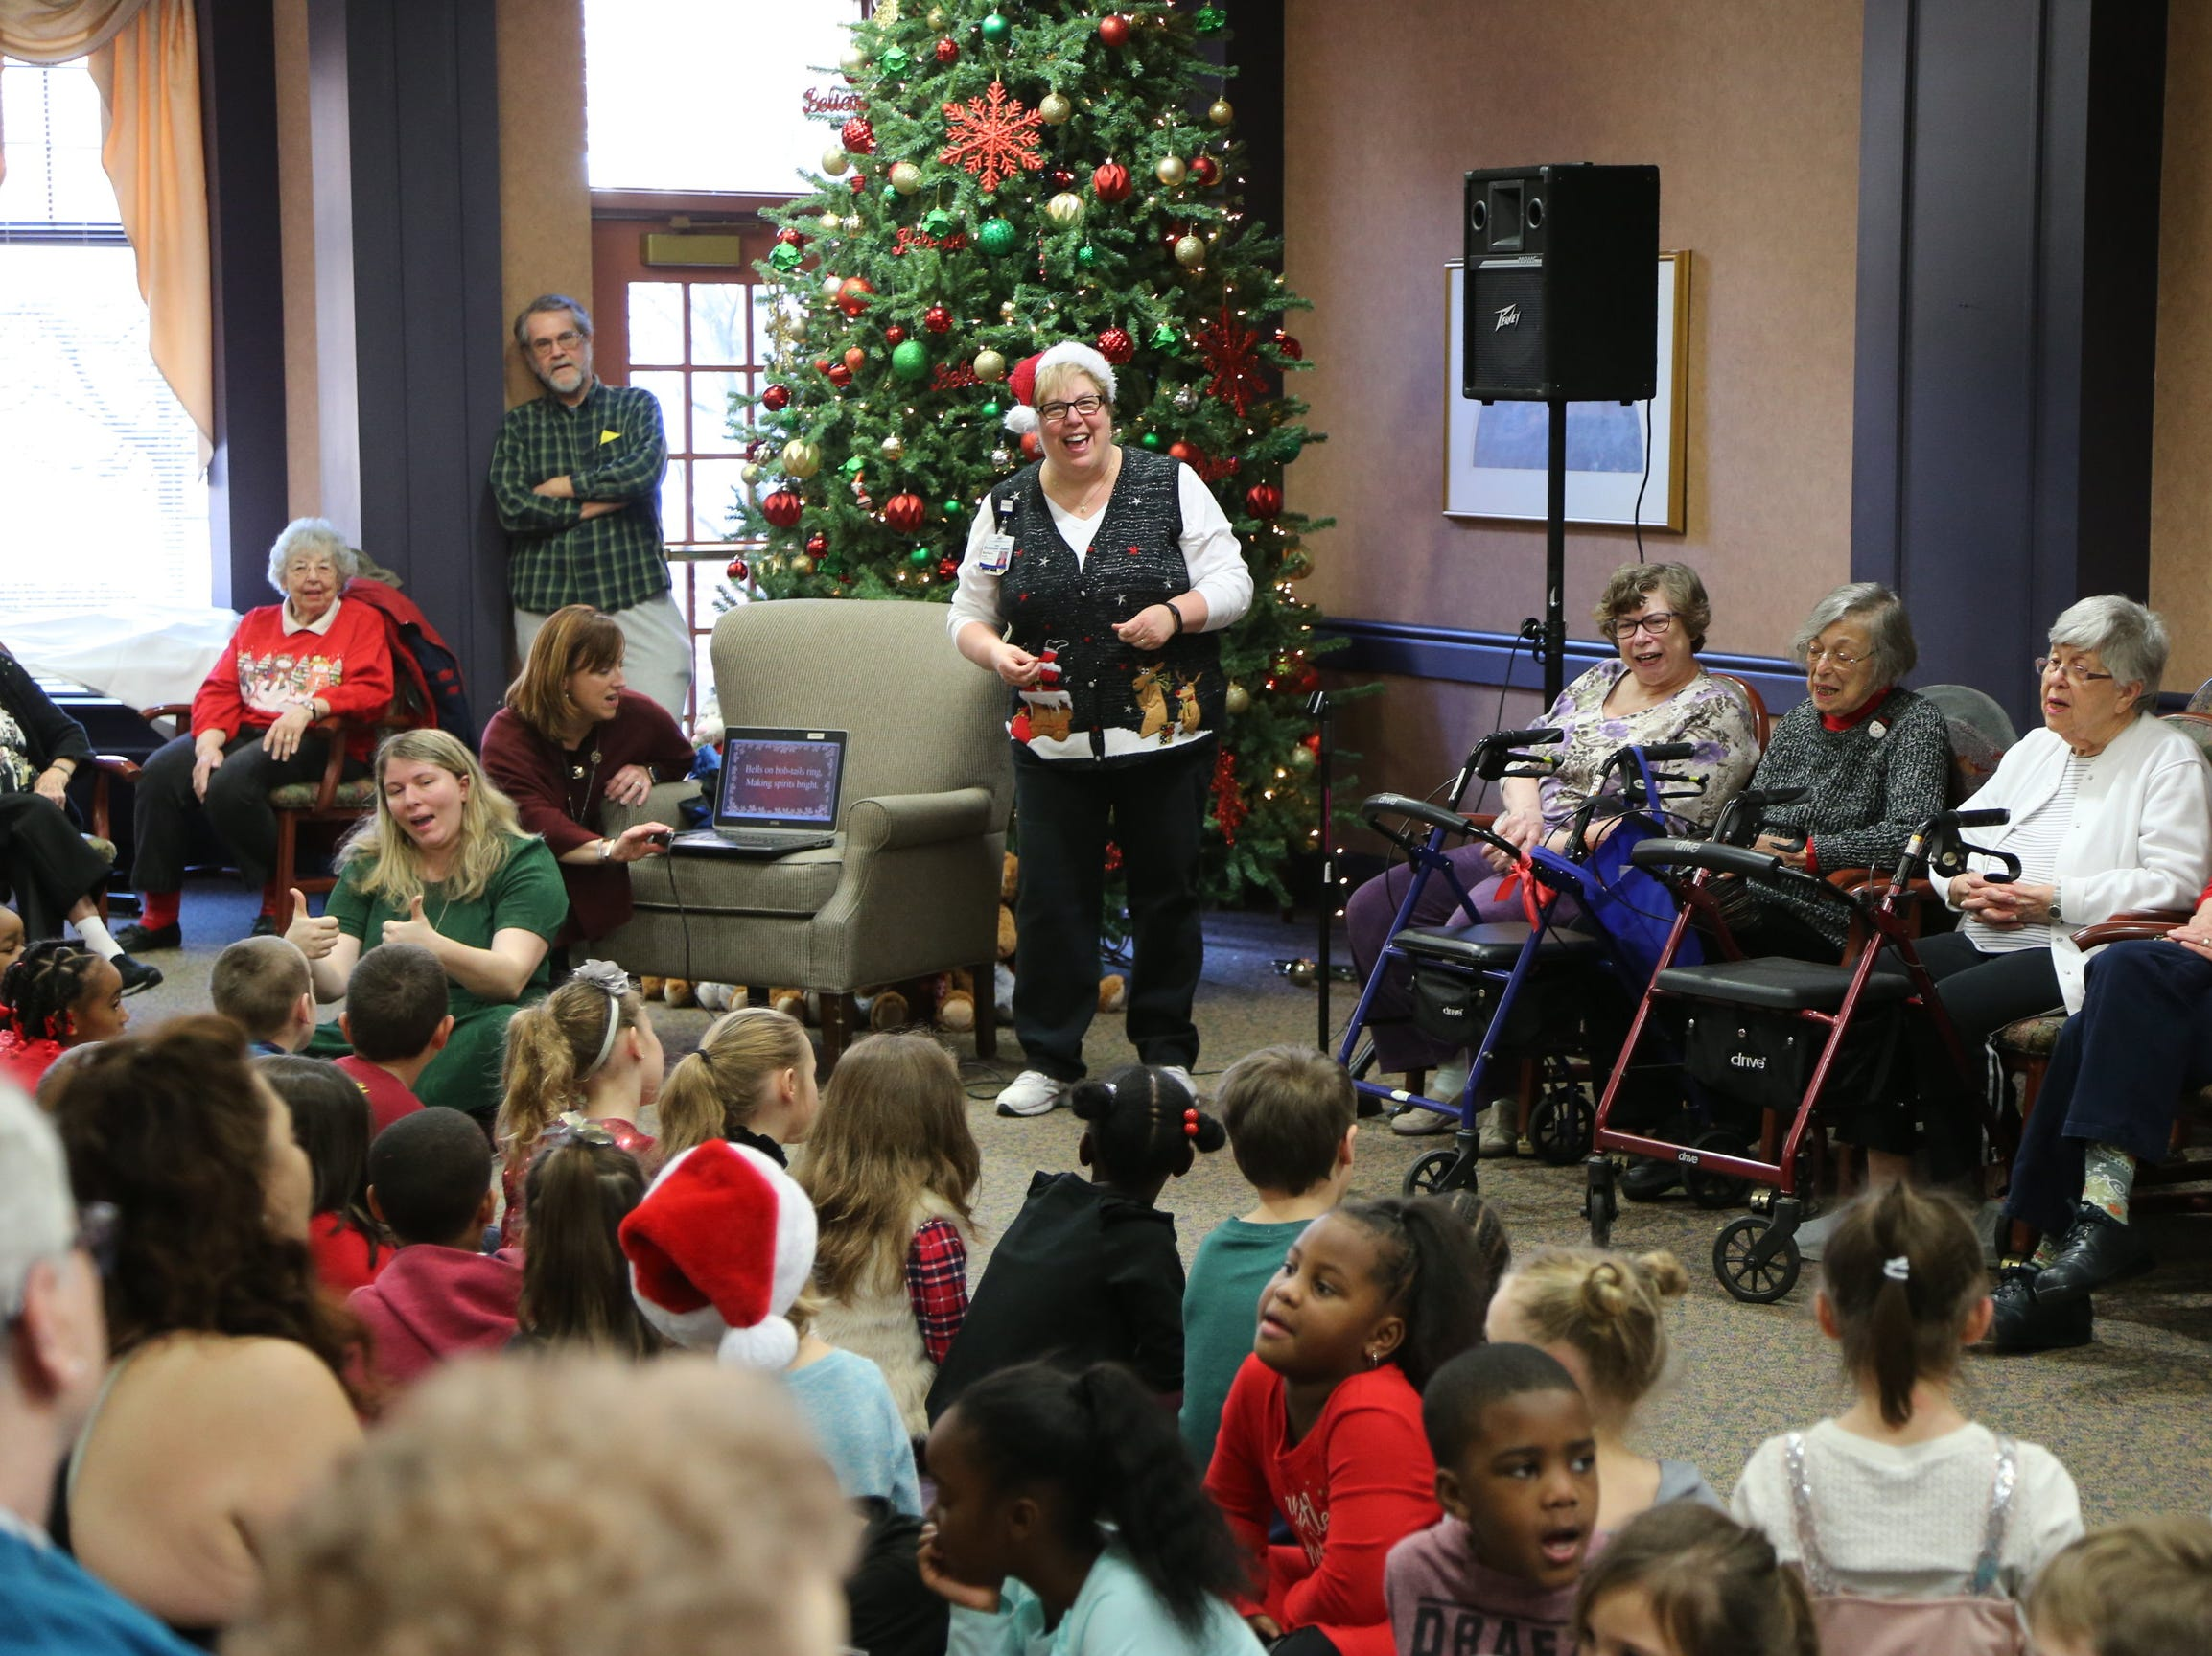 Barb Smith, Fullness of Life coordinator at Botsford Commons, helps lead senior residents and first-graders from Botsford Elementary in the singing favorite holiday songs.